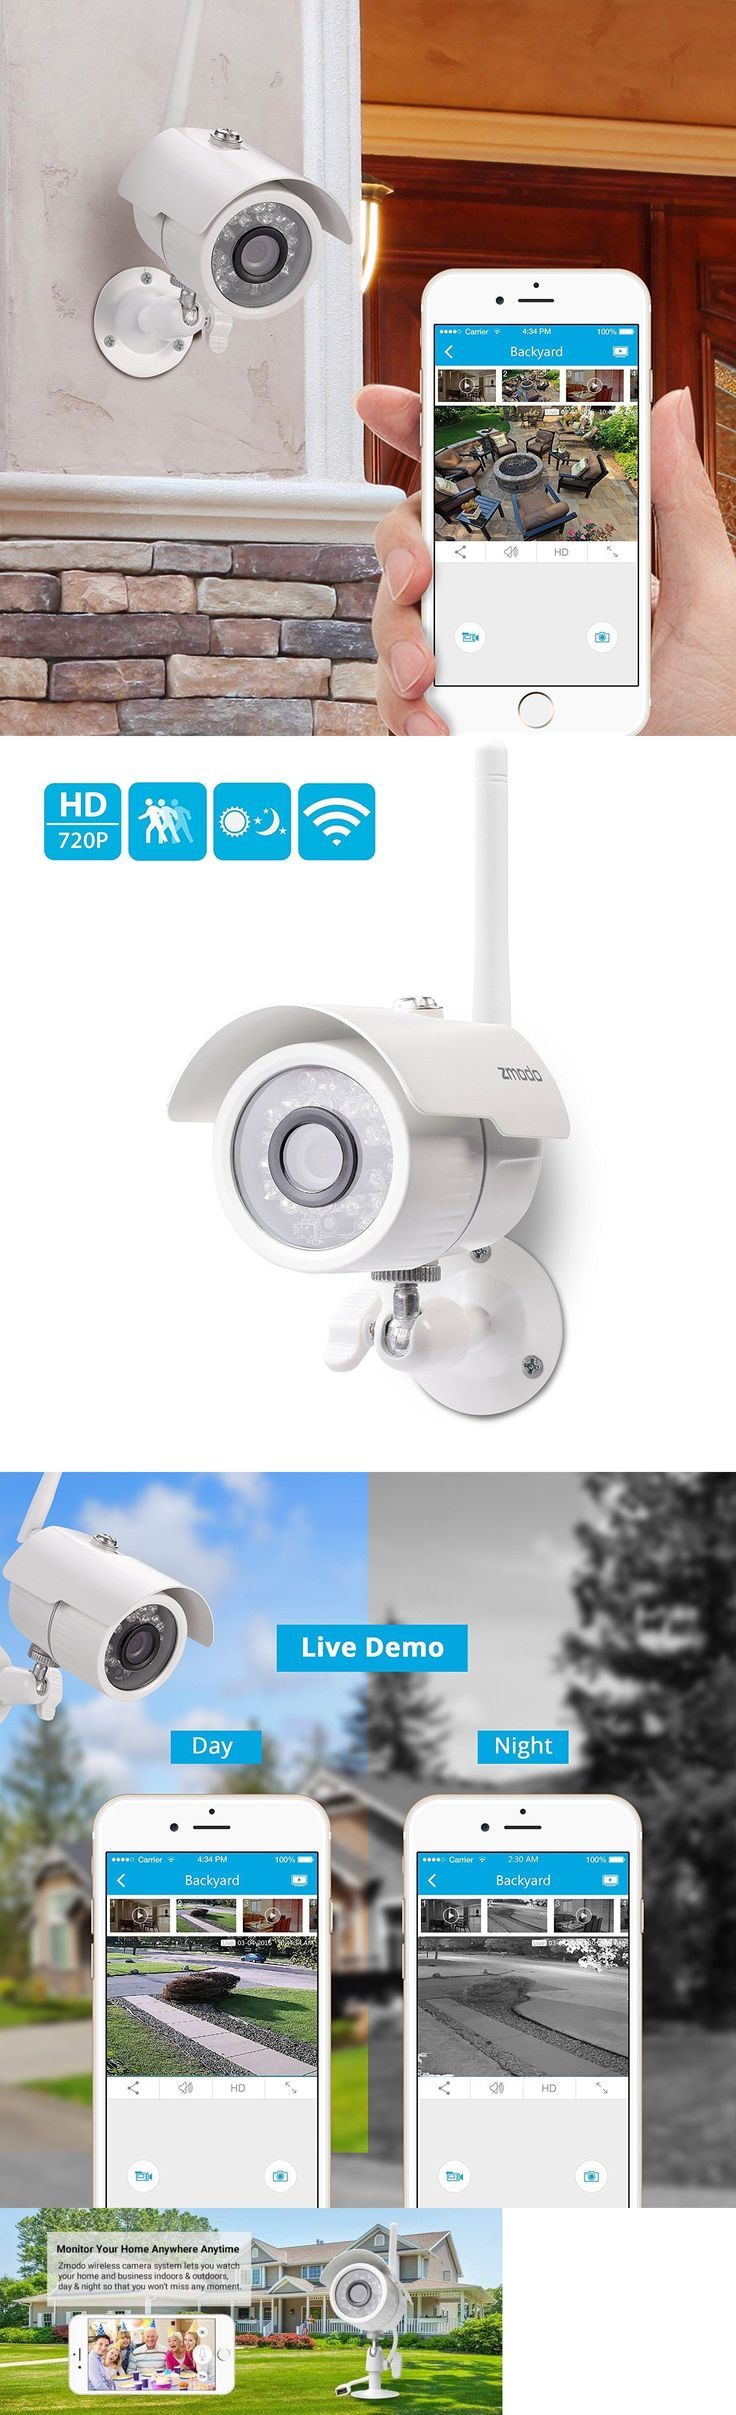 Surveillance Security Systems: Home Wireless Security Video Camera System Surveillance 720 Hd Night Vision App -> BUY IT NOW ONLY: $46.75 on eBay!